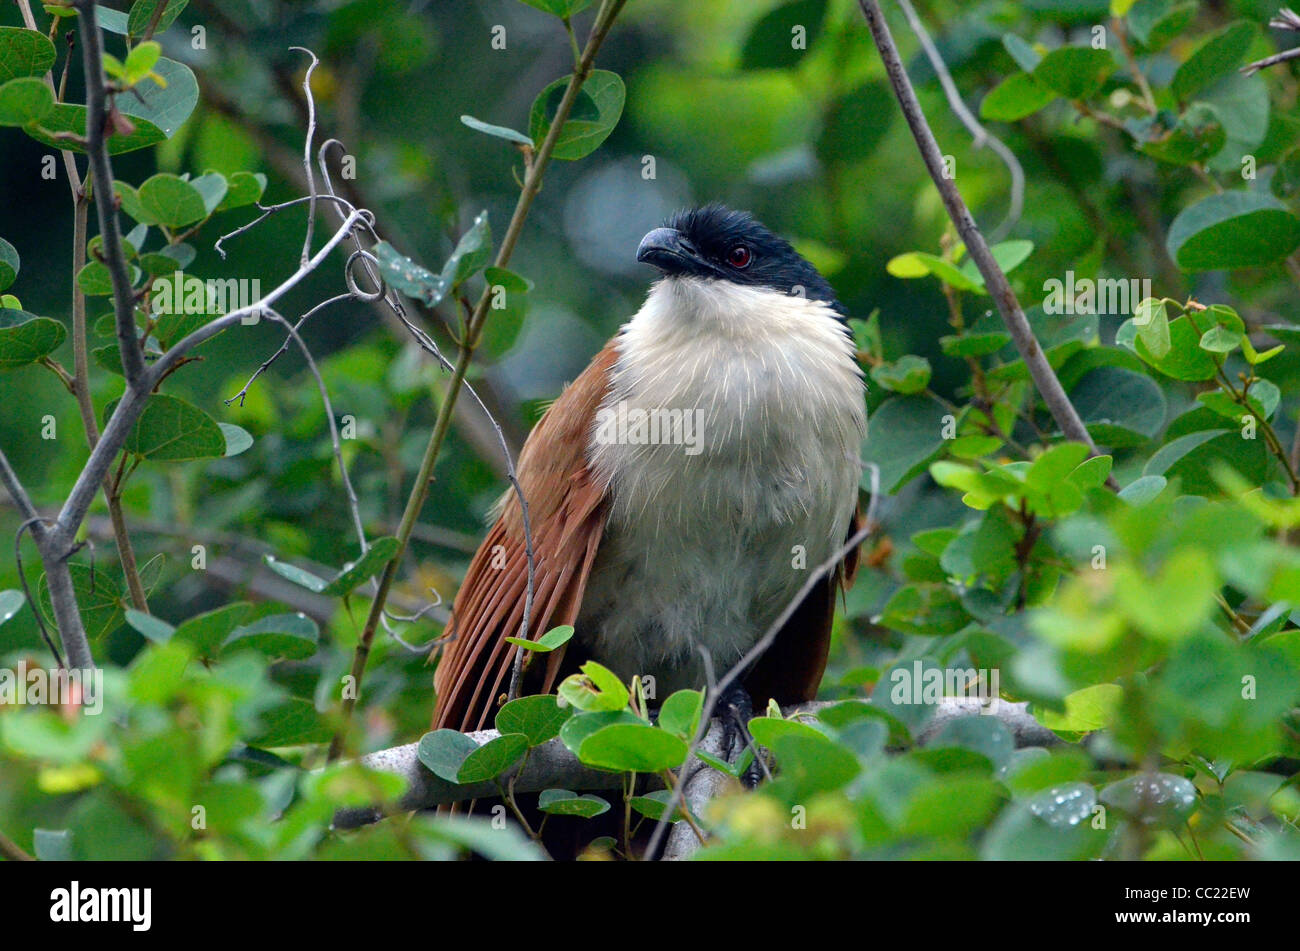 Kruger national Park in South Africa is world famous for do-it-yourself game viewing at affordable rates. Coucal - Stock Image